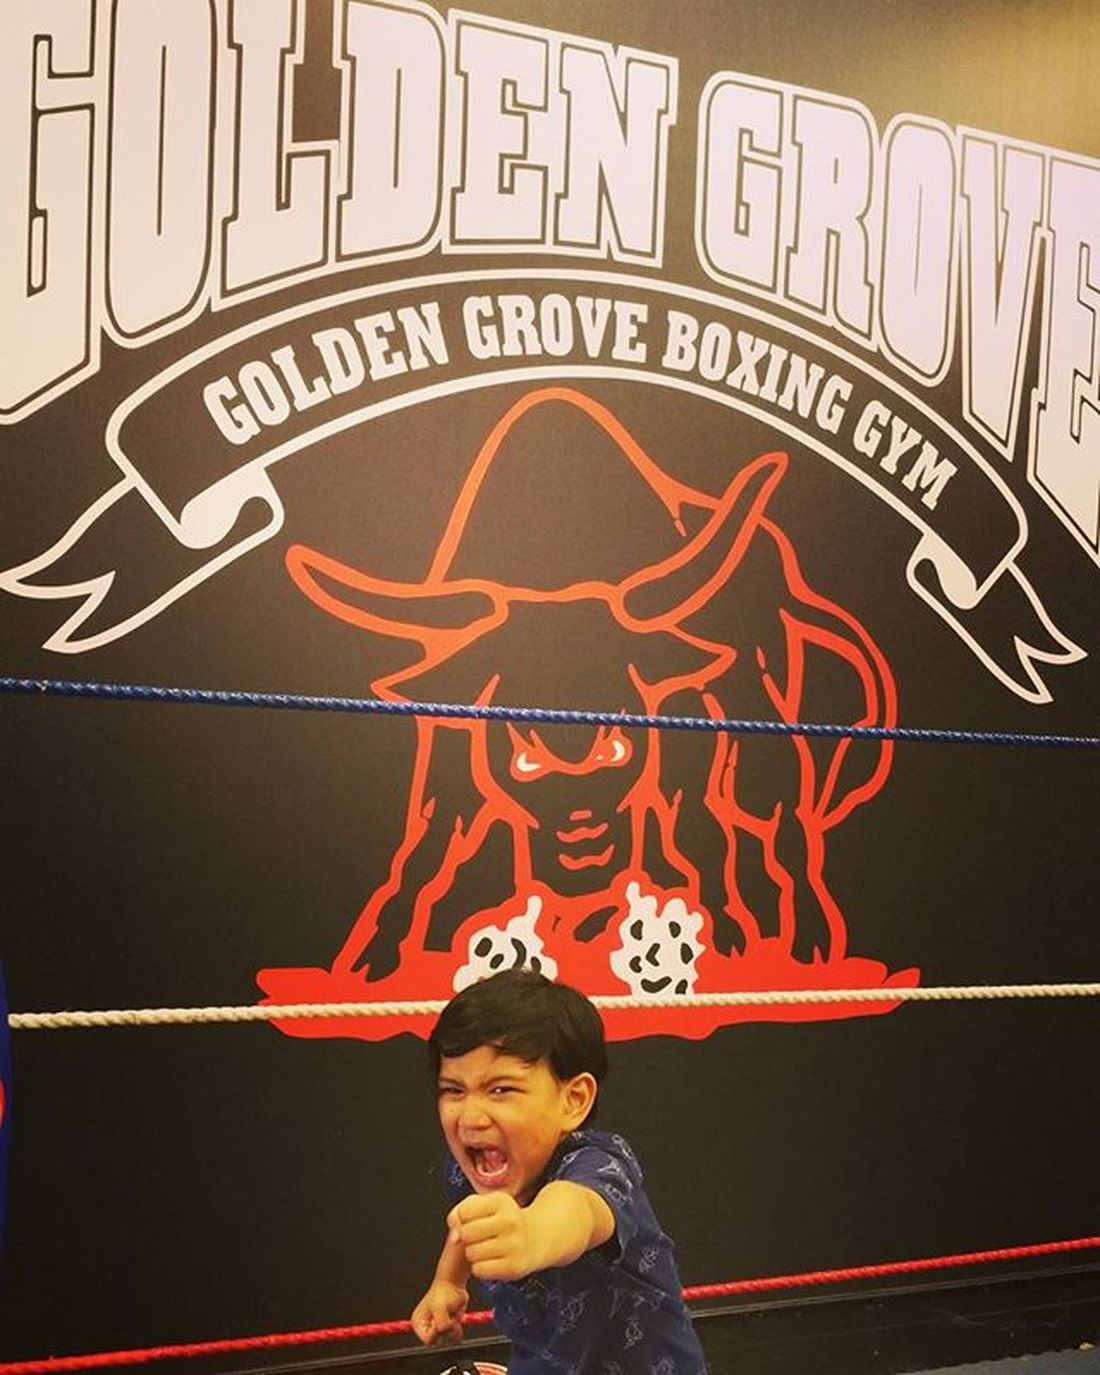 The new face of Golden Grove Boxing Gym. 😂 Incharacter Boxer Kids Goldengroveboxinggym Dadsgym Imaginemax Posermax Keepingupwithmem